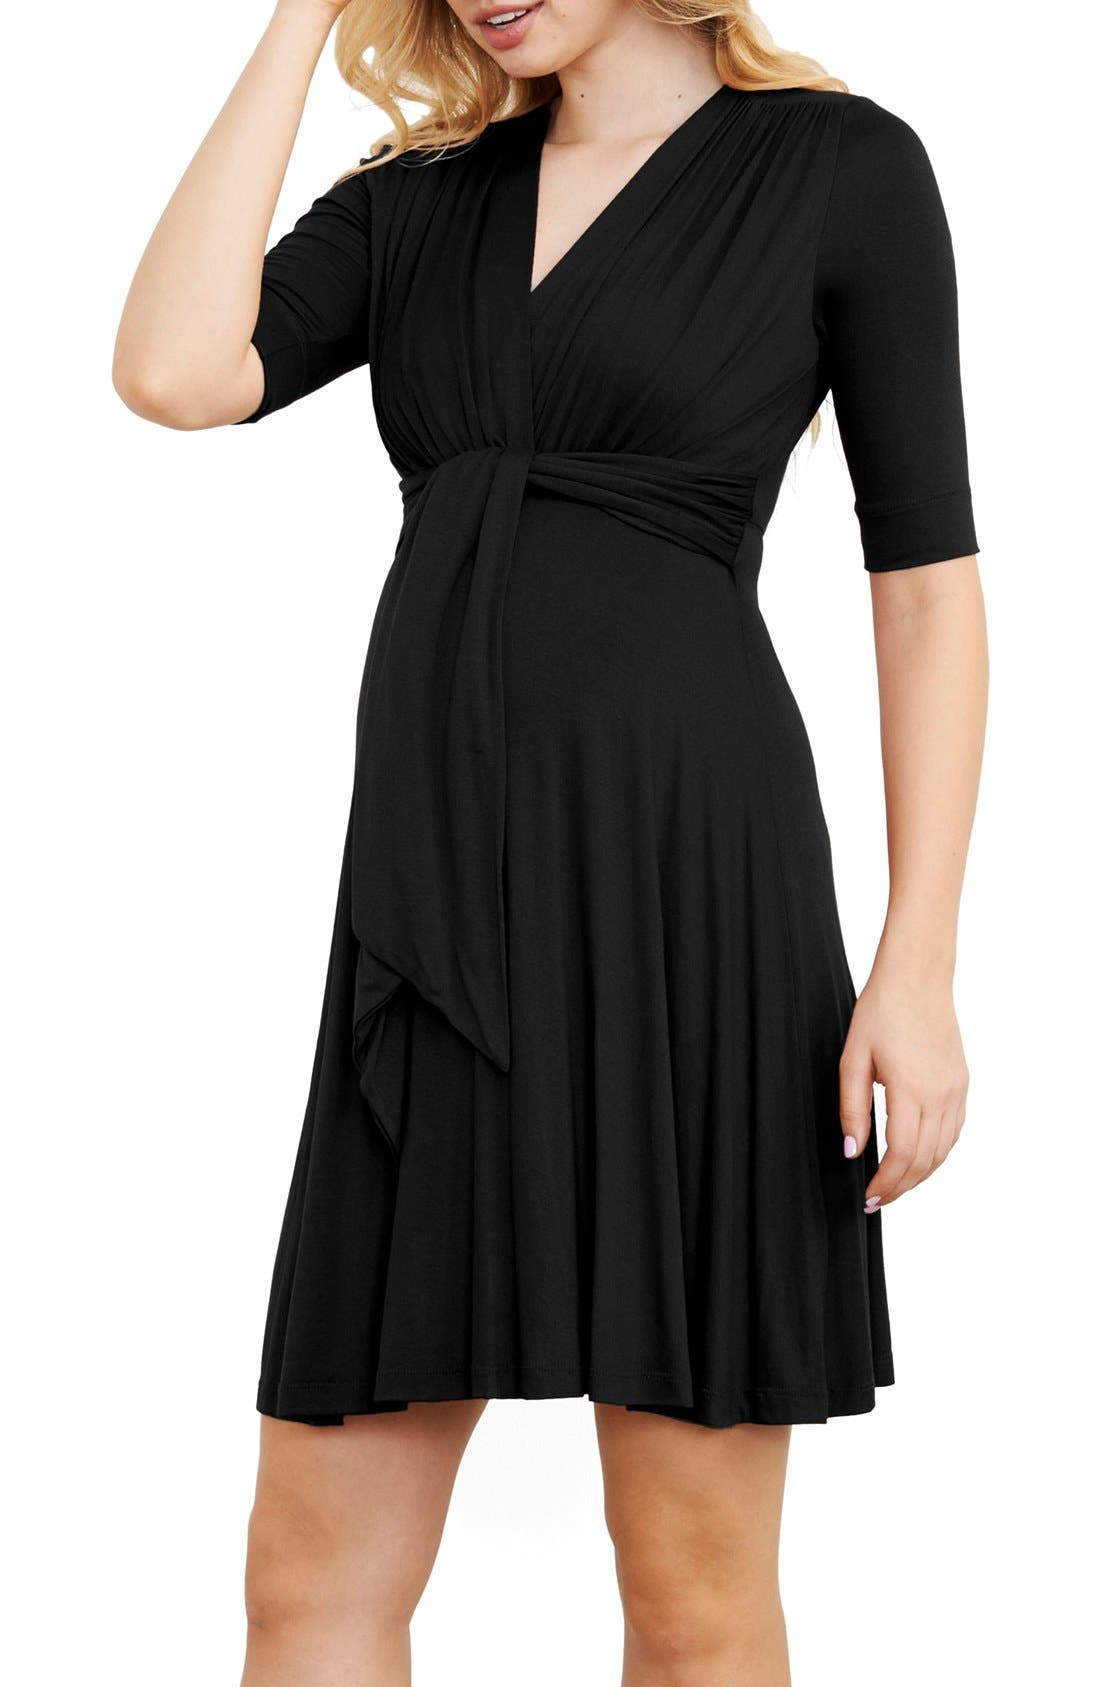 Alternate Image 1 Selected - Maternal America Maternity Tie Front Dress